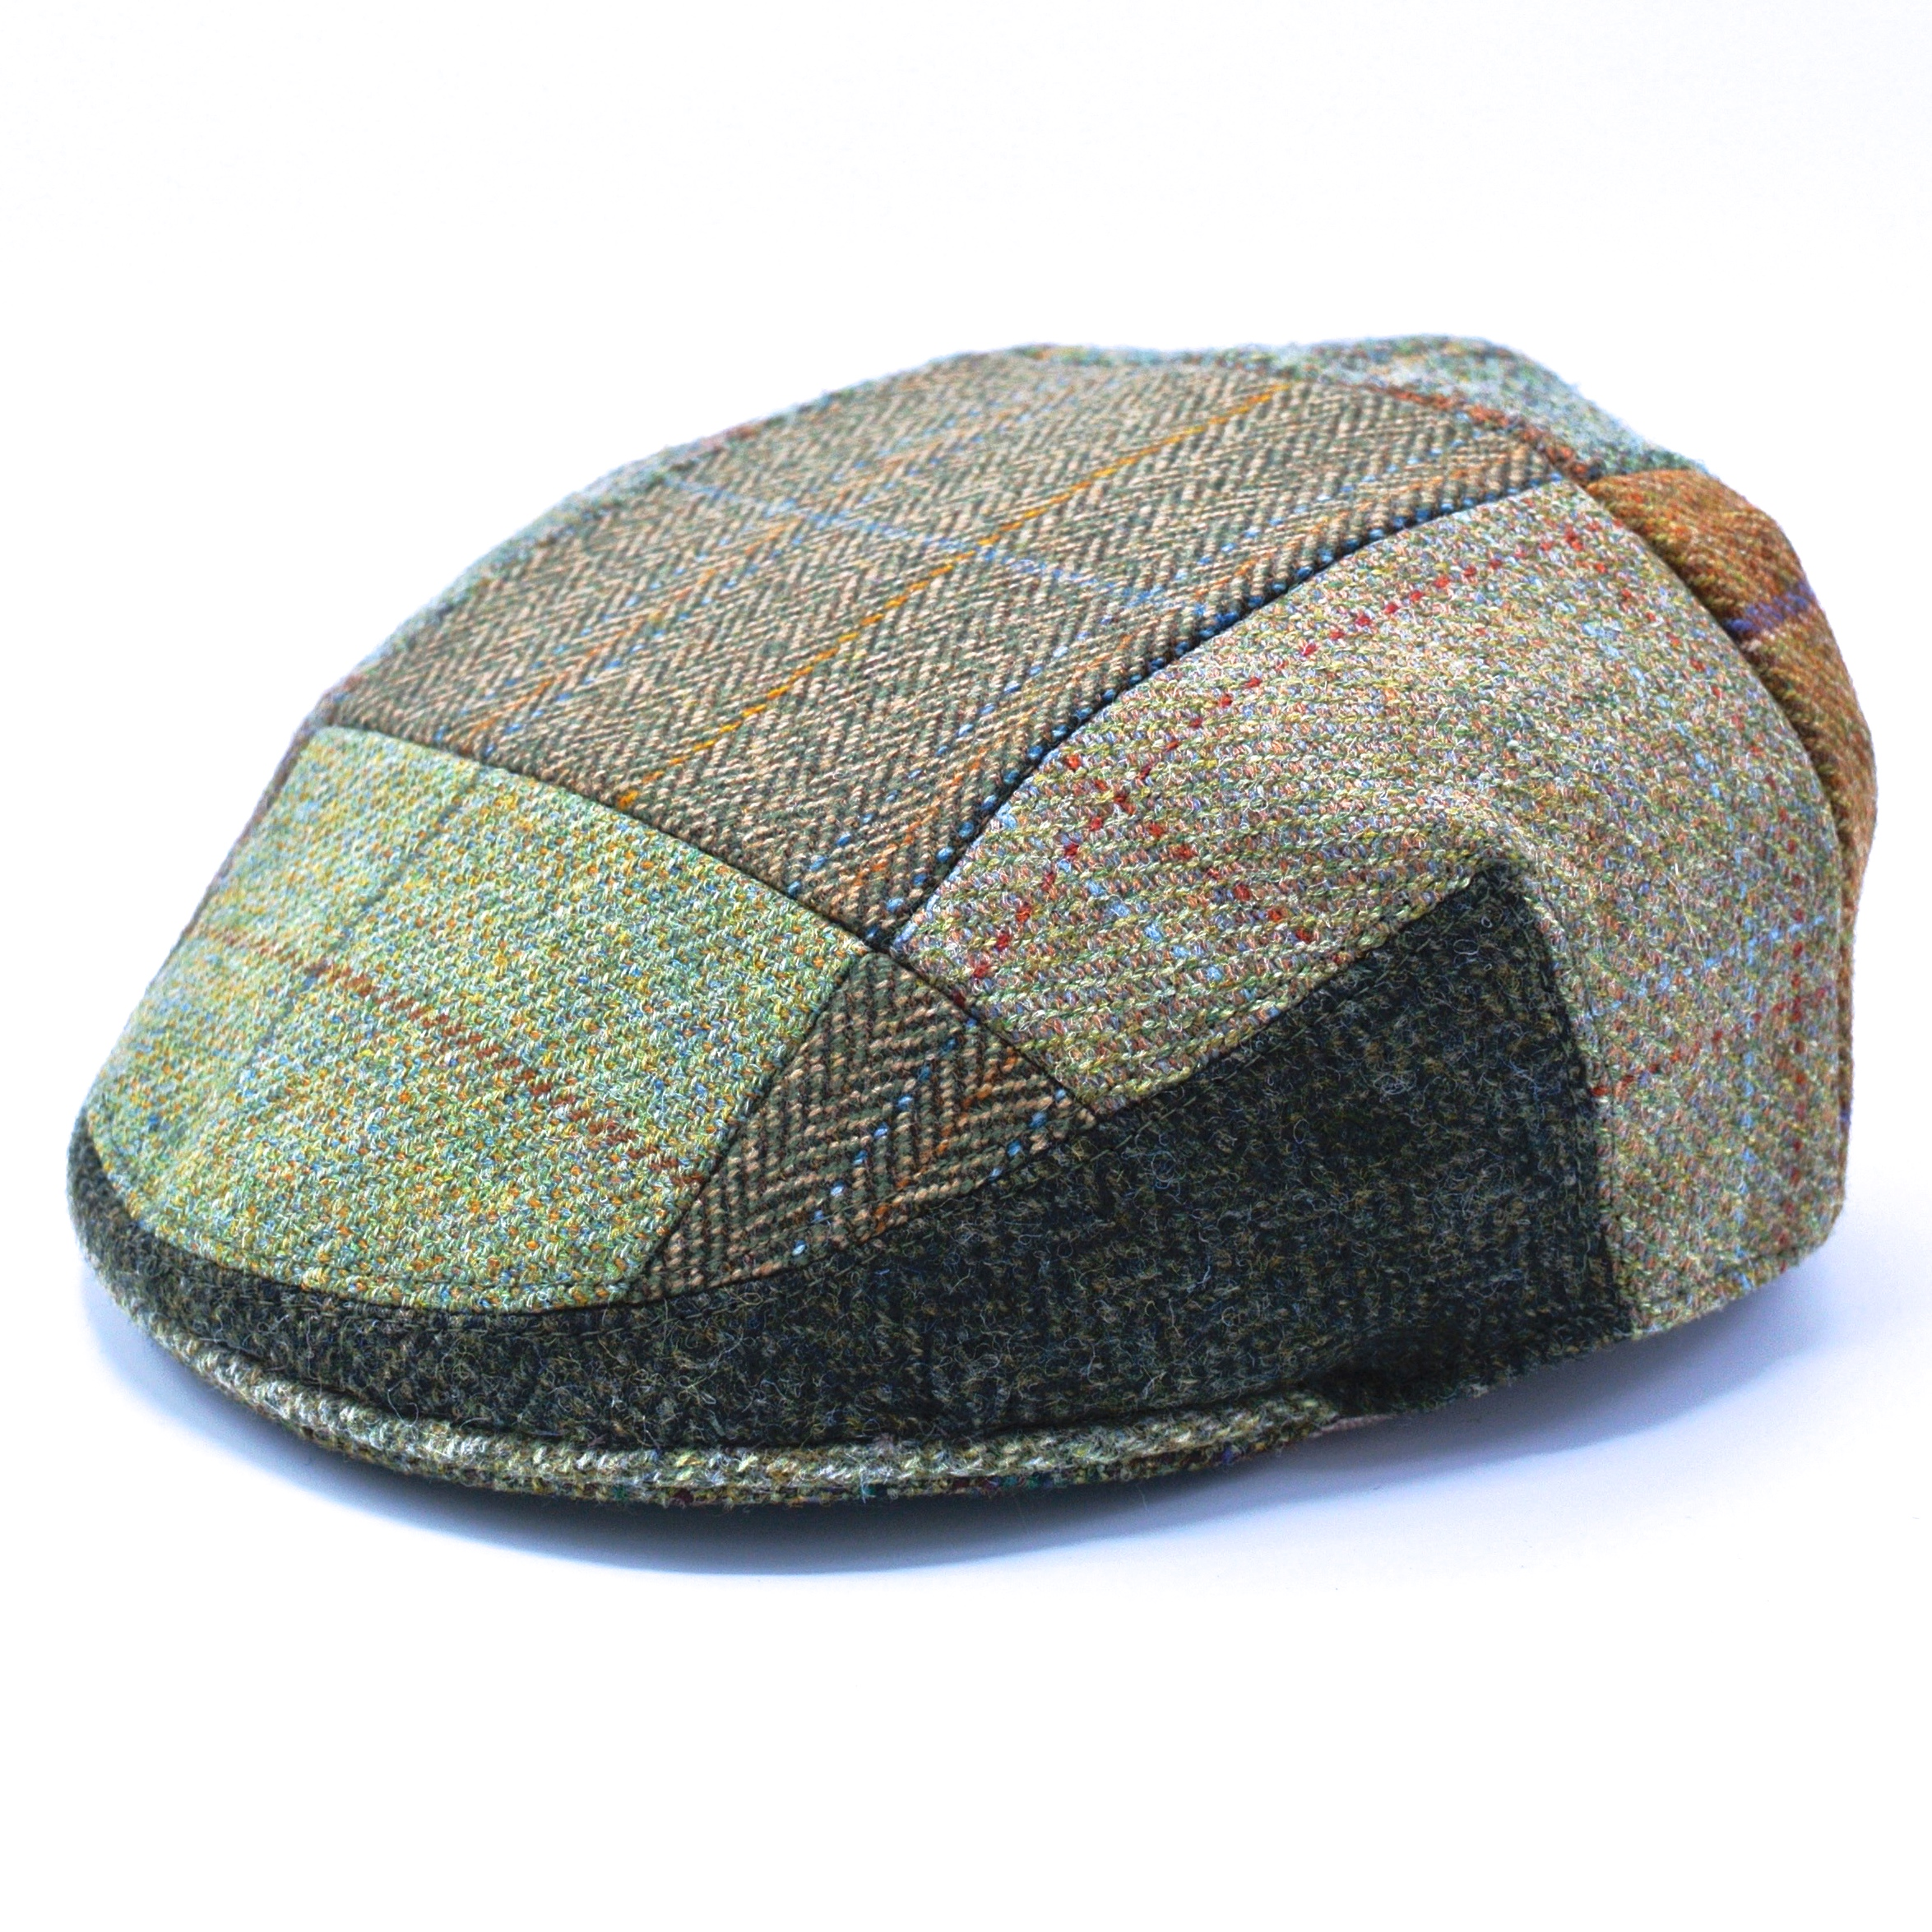 Lawrens and Foster Flat Cap Mönstrad